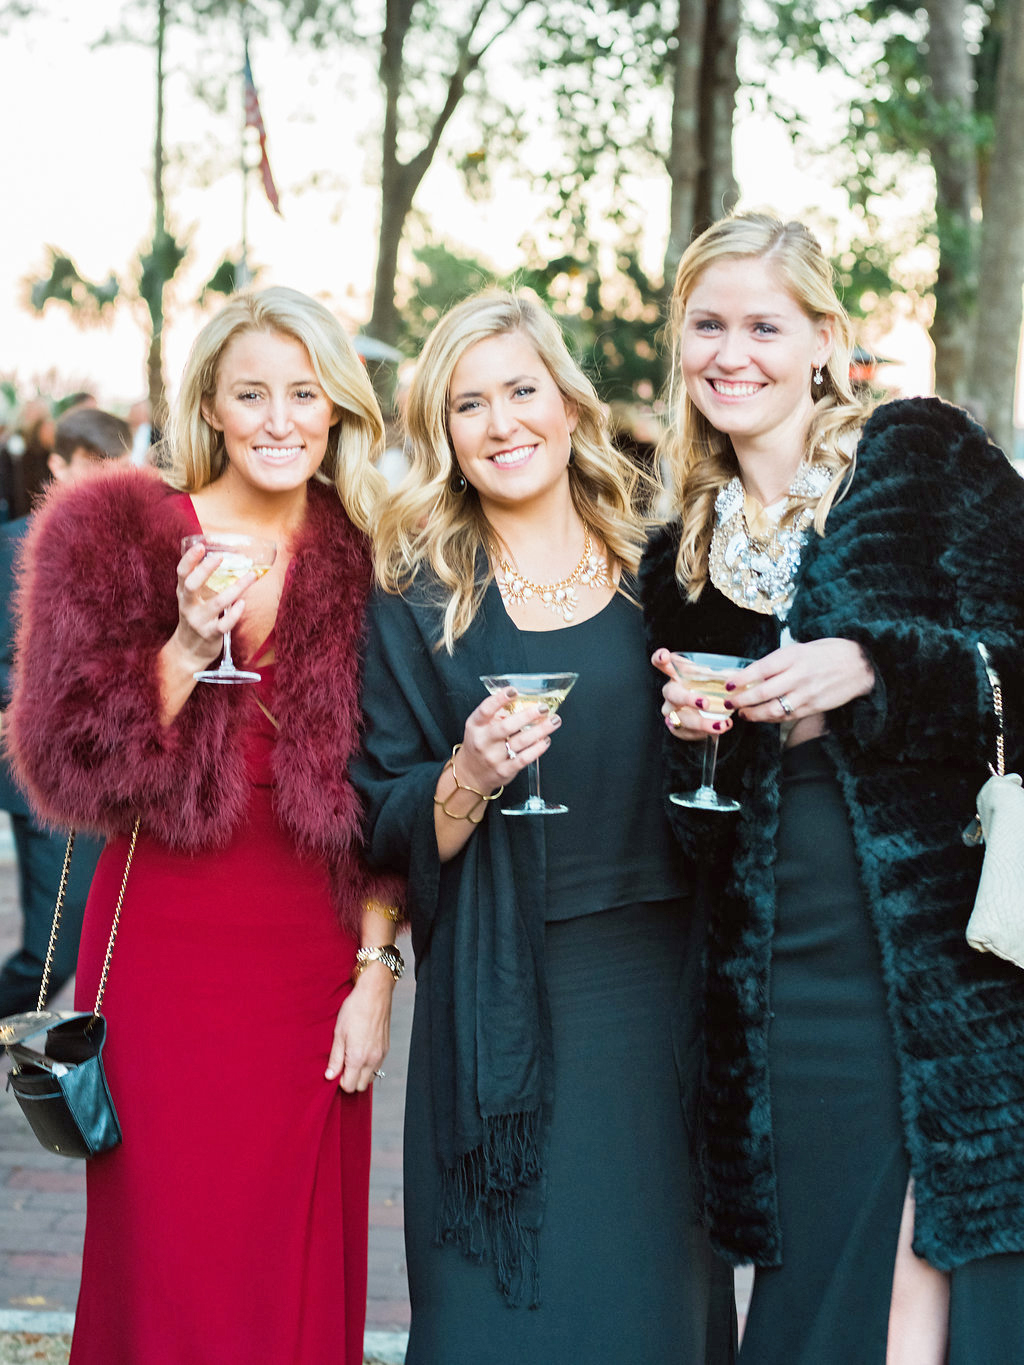 What to Do with Guests' Coats at a Fall or Winter Wedding